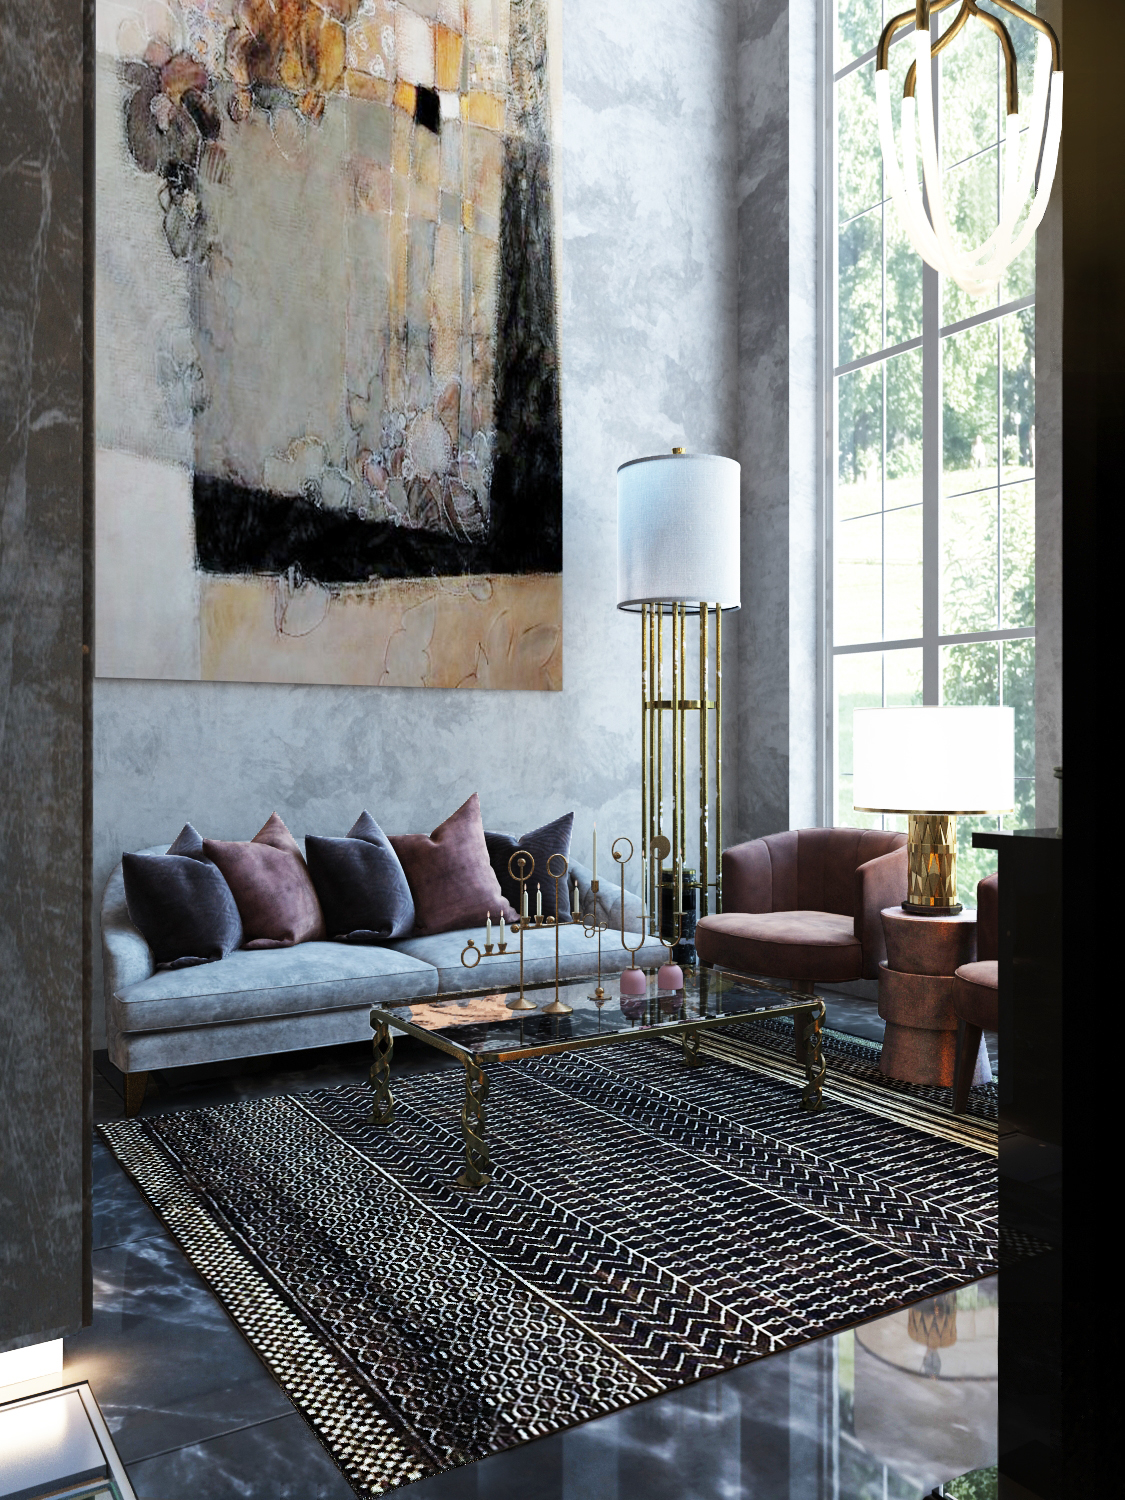 Rosko Design Newest Project Features Traditional Yet Modern Interior rosko design Rosko Design Newest Project Features Traditional Yet Modern Interior Rosko Design Newest Project Features Traditional Yet Modern Interior 7